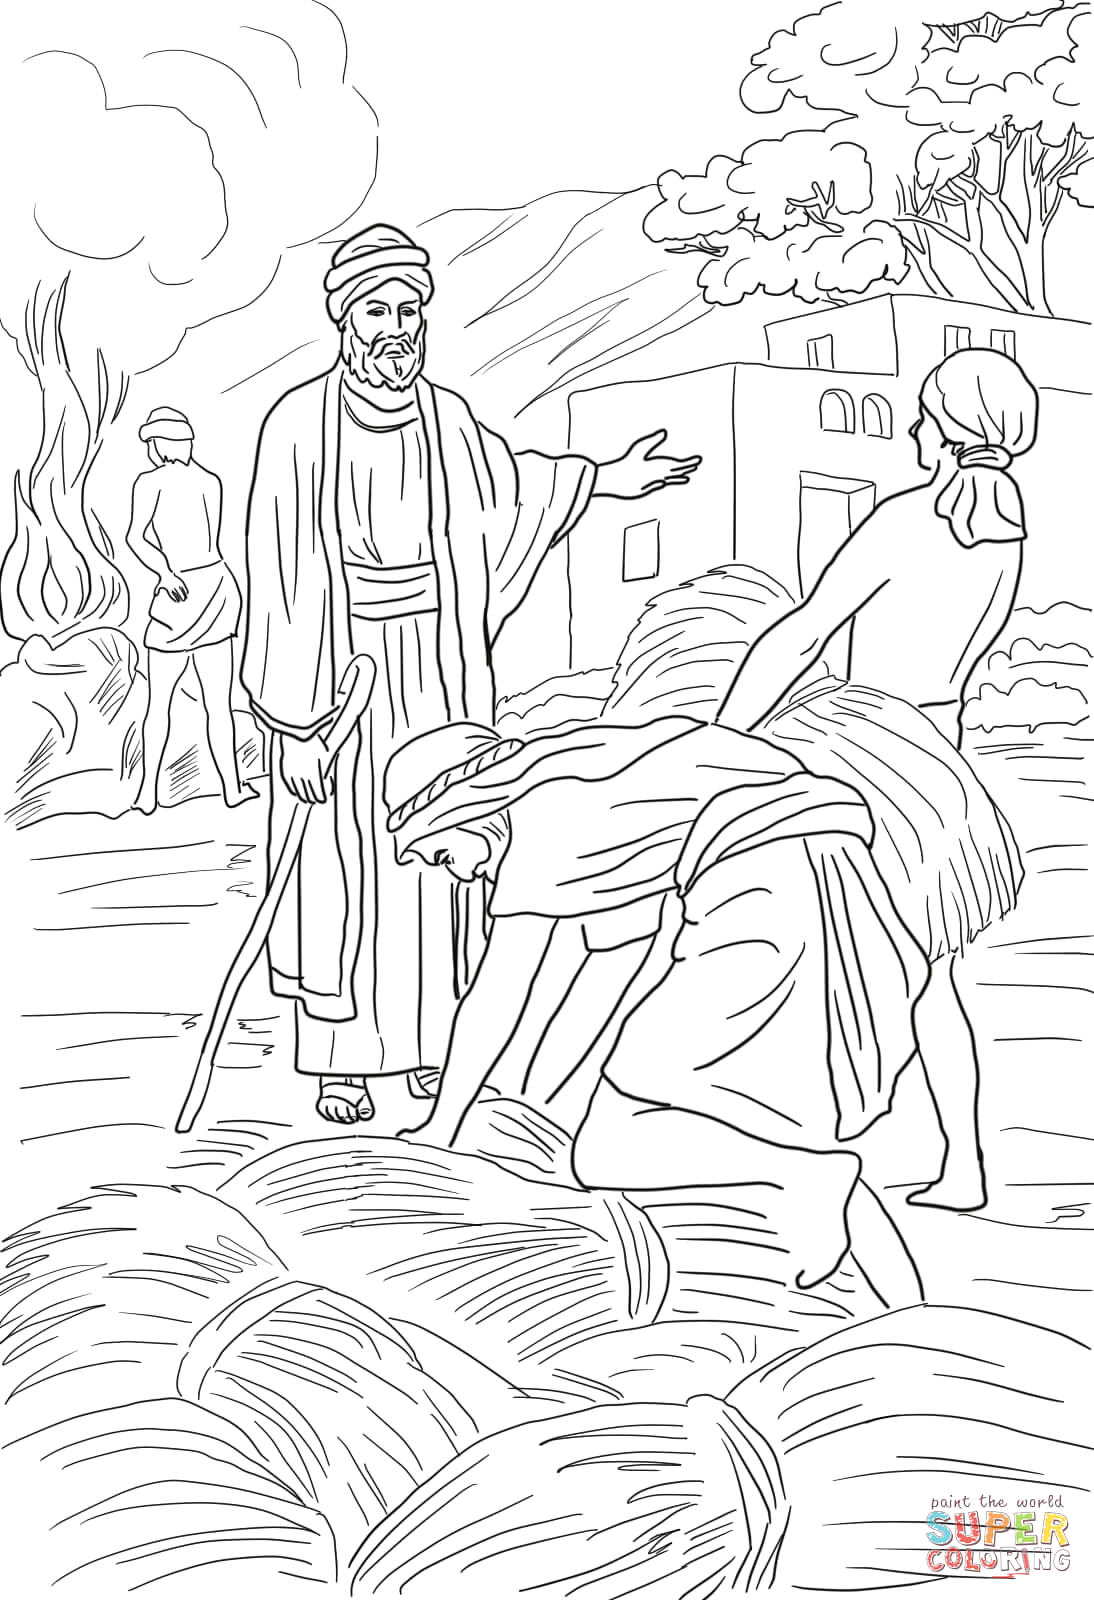 Parable Of the Wheat and Weeds Coloring Page Parable Of the Wheat and Weeds Coloring Page